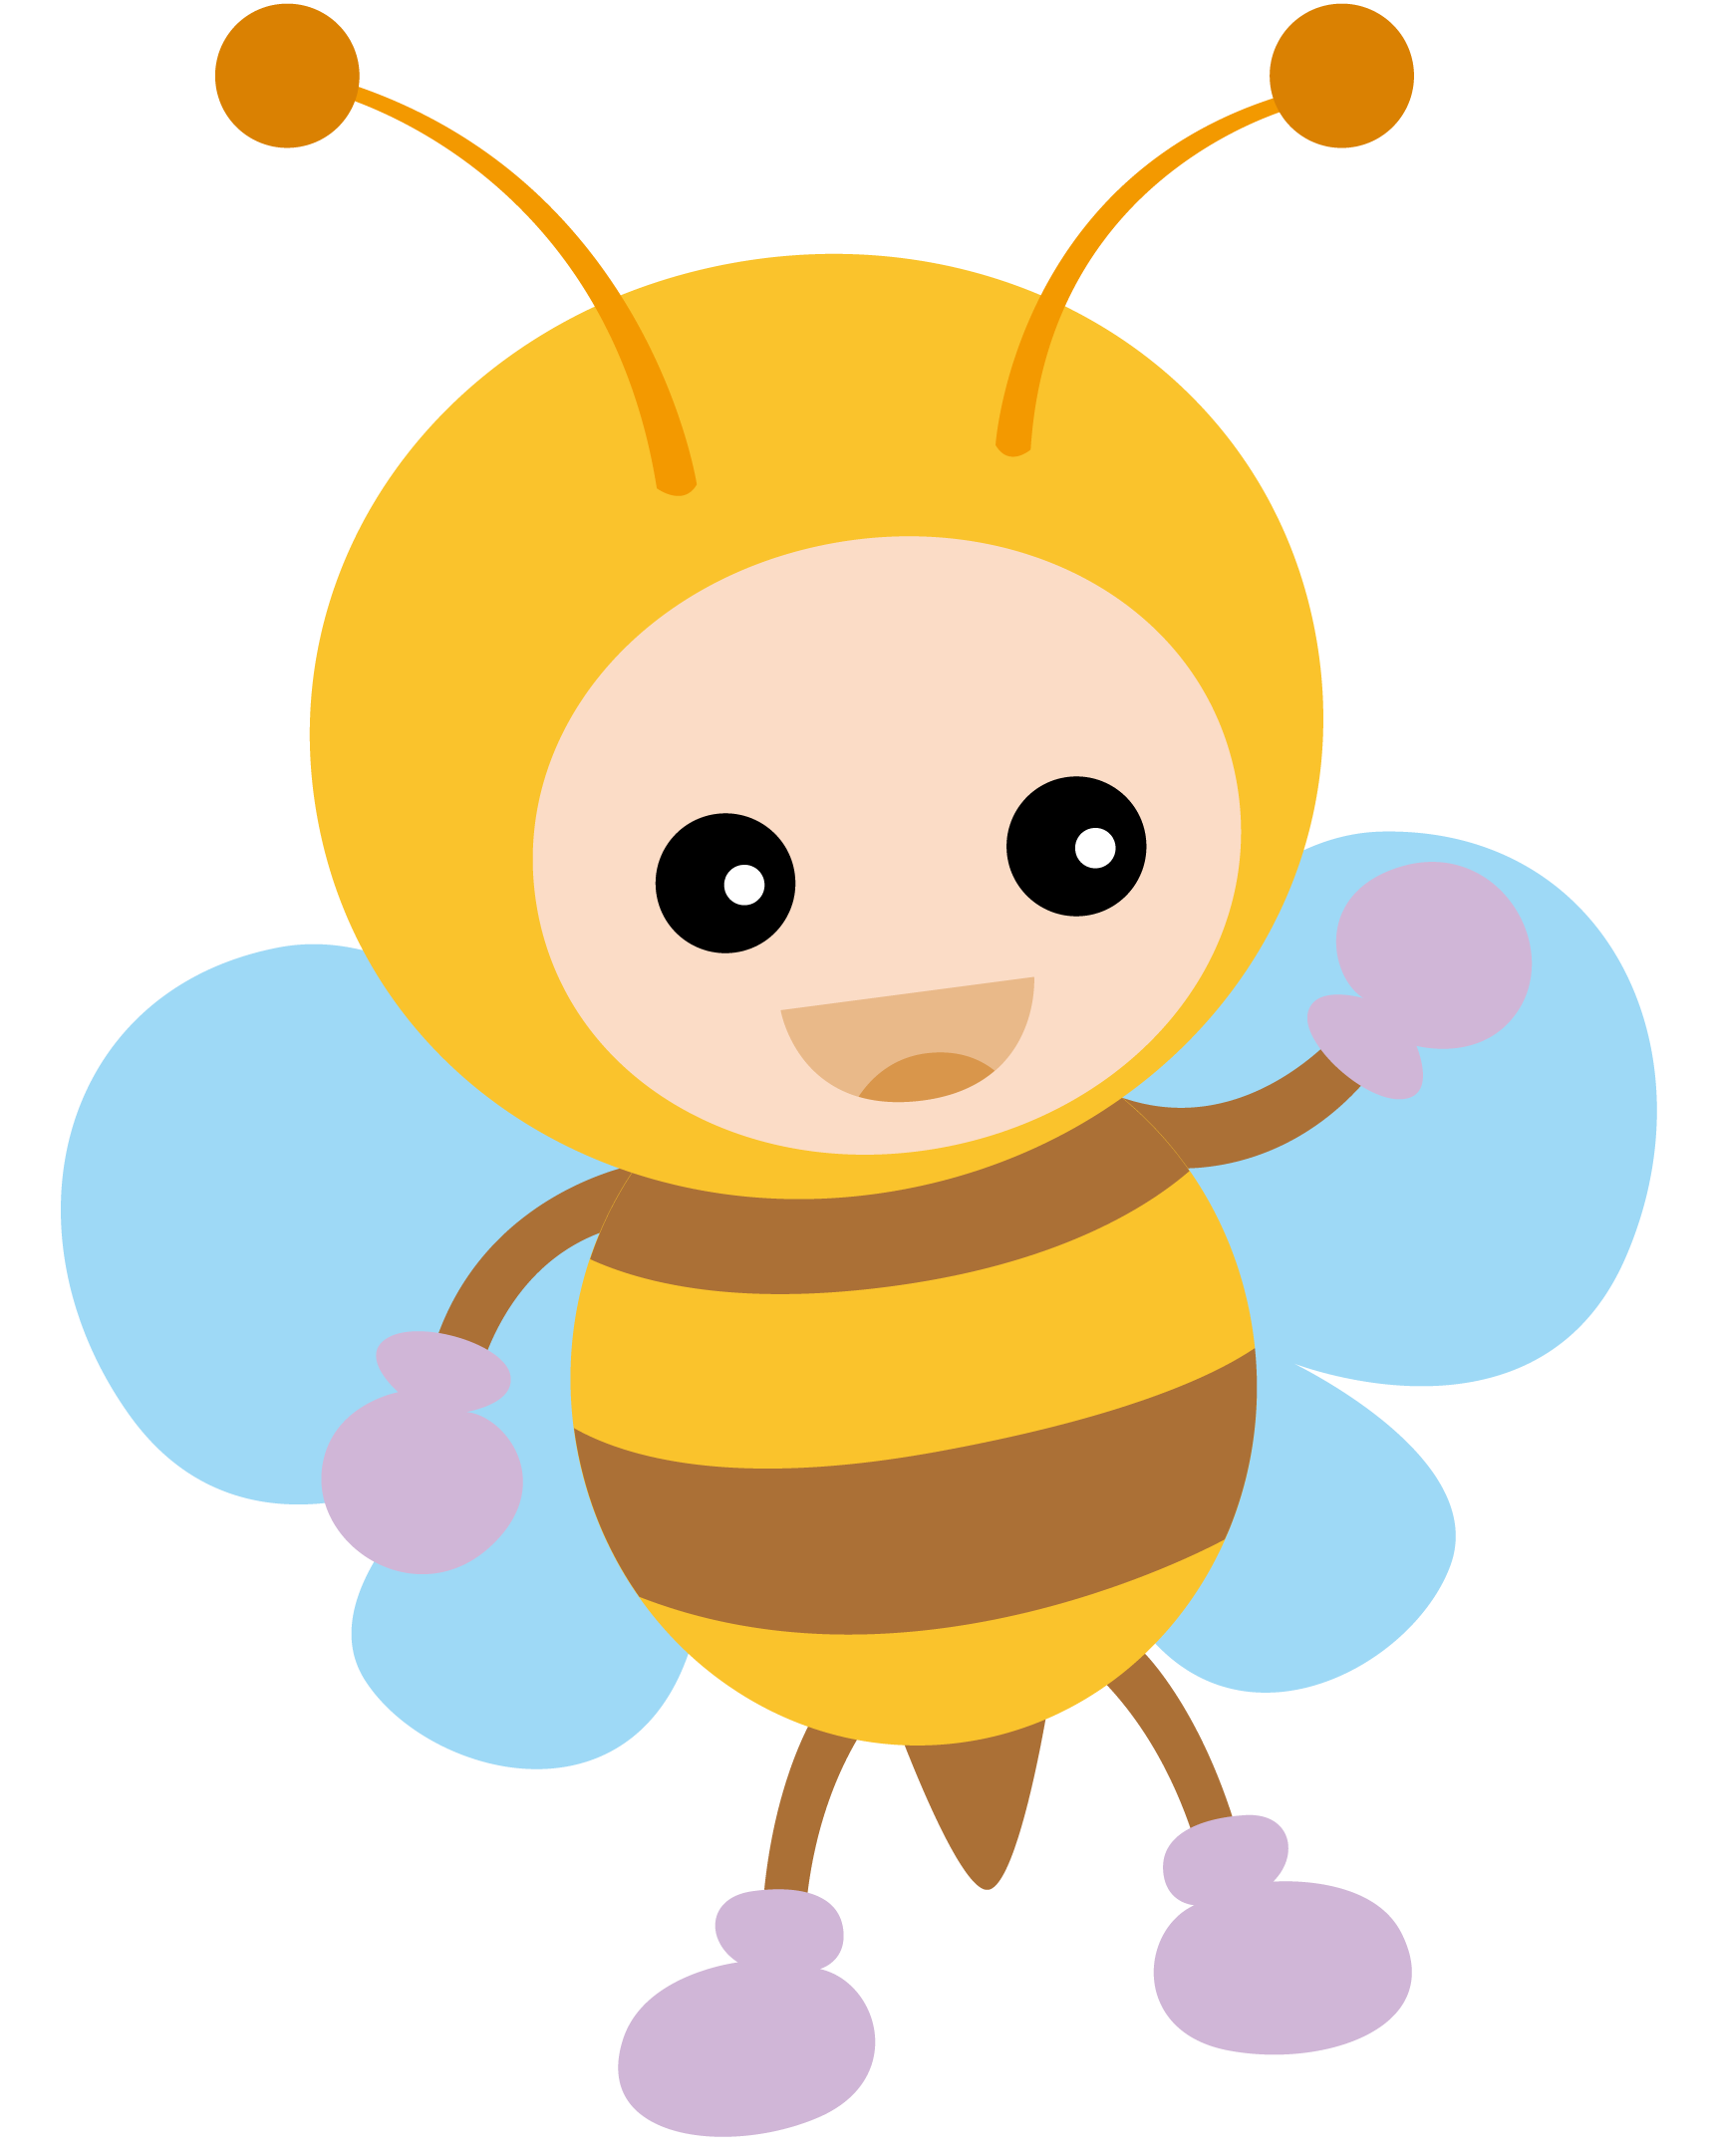 png royalty free download Pin by naenae nanny. Bumble clipart spring.